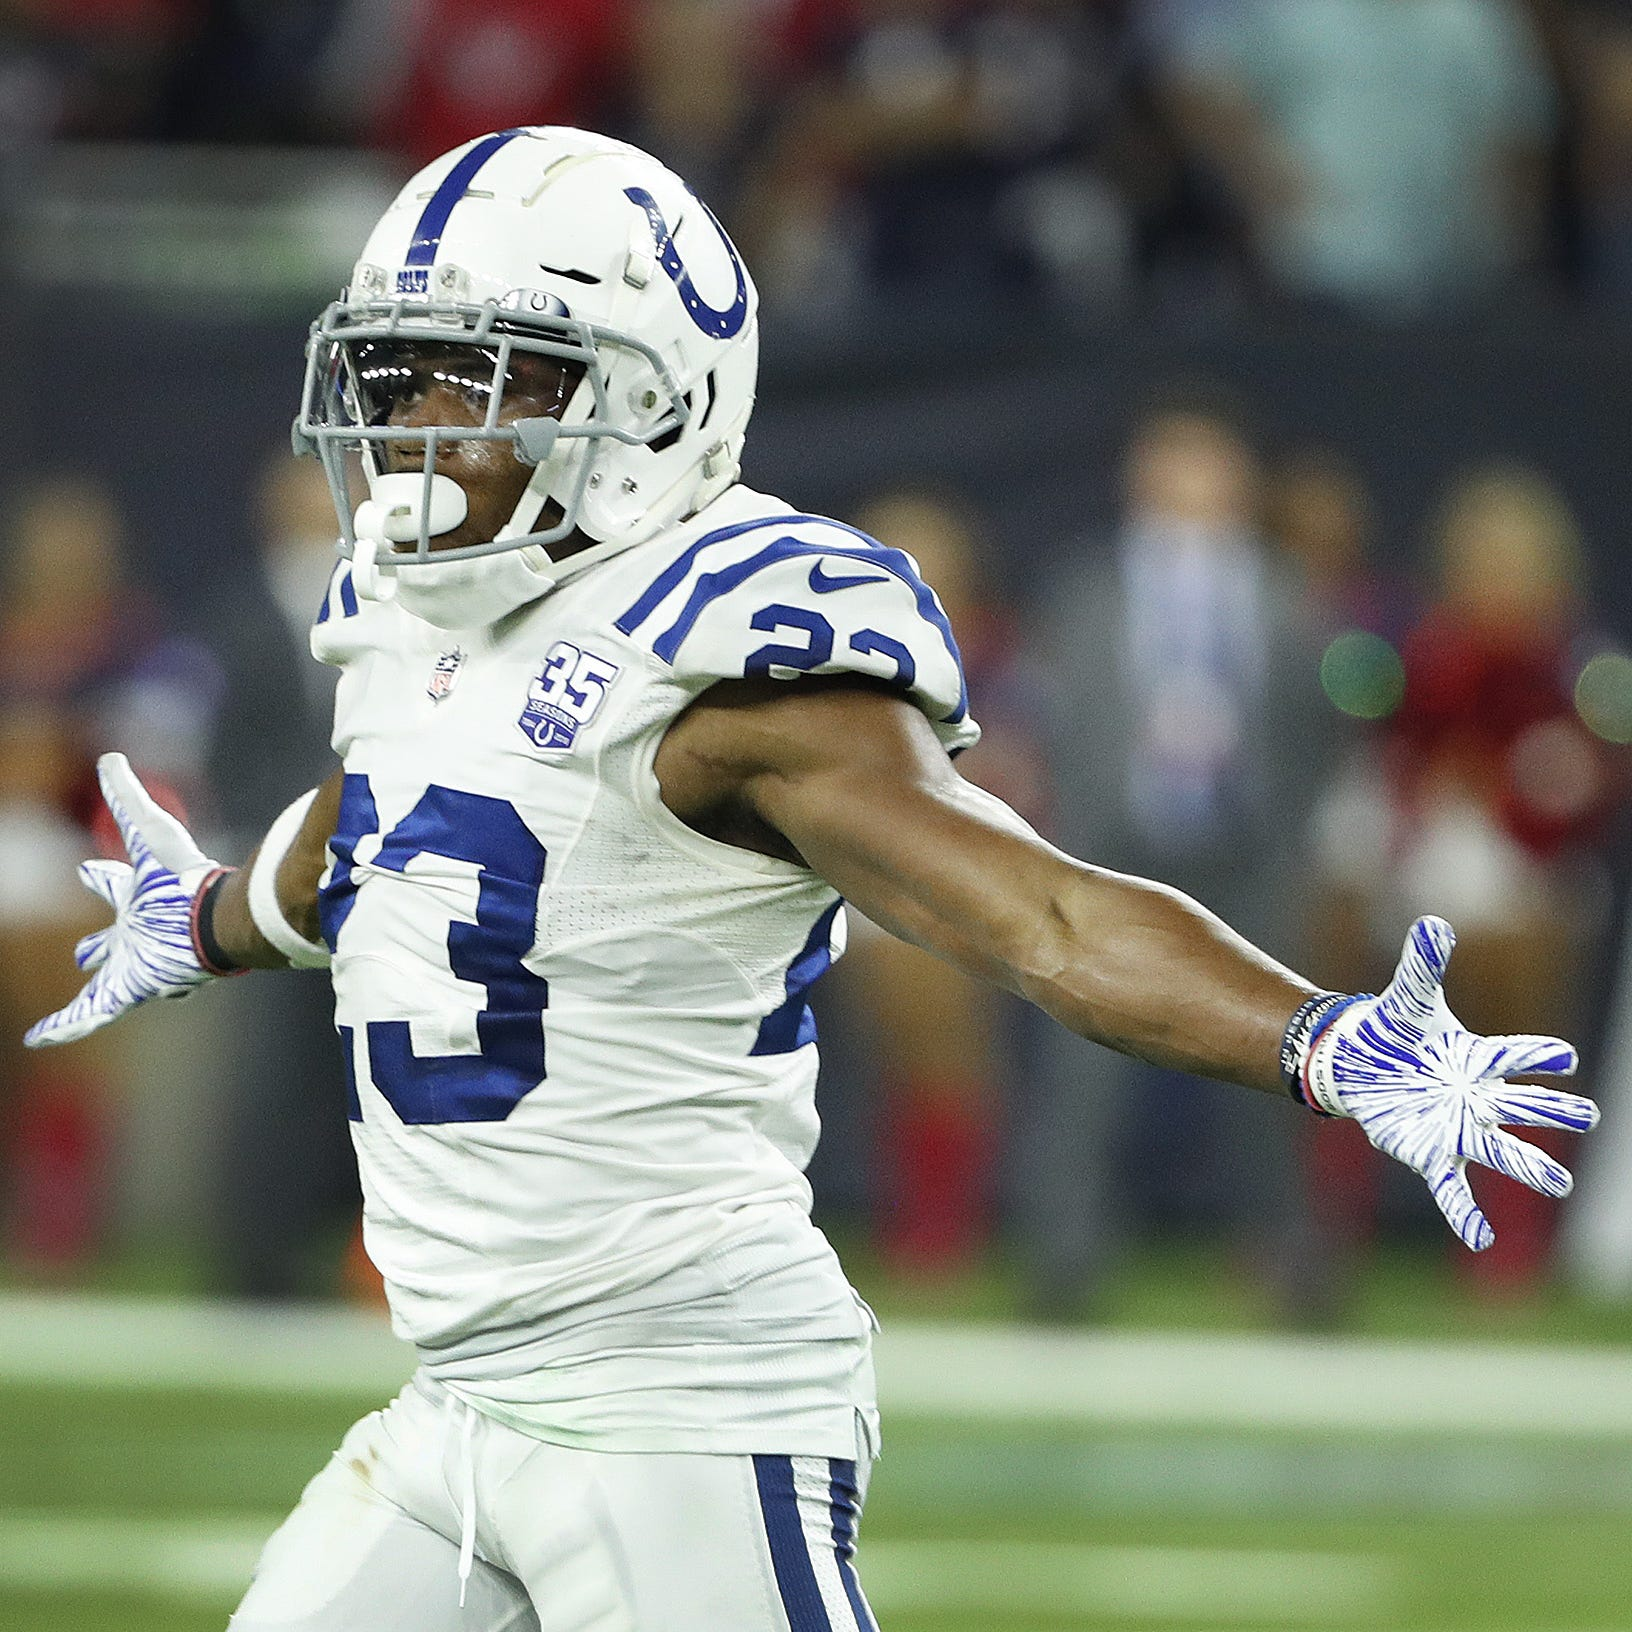 Colts cornerback Kenny Moore nearly doubled his 2018 salary with his play